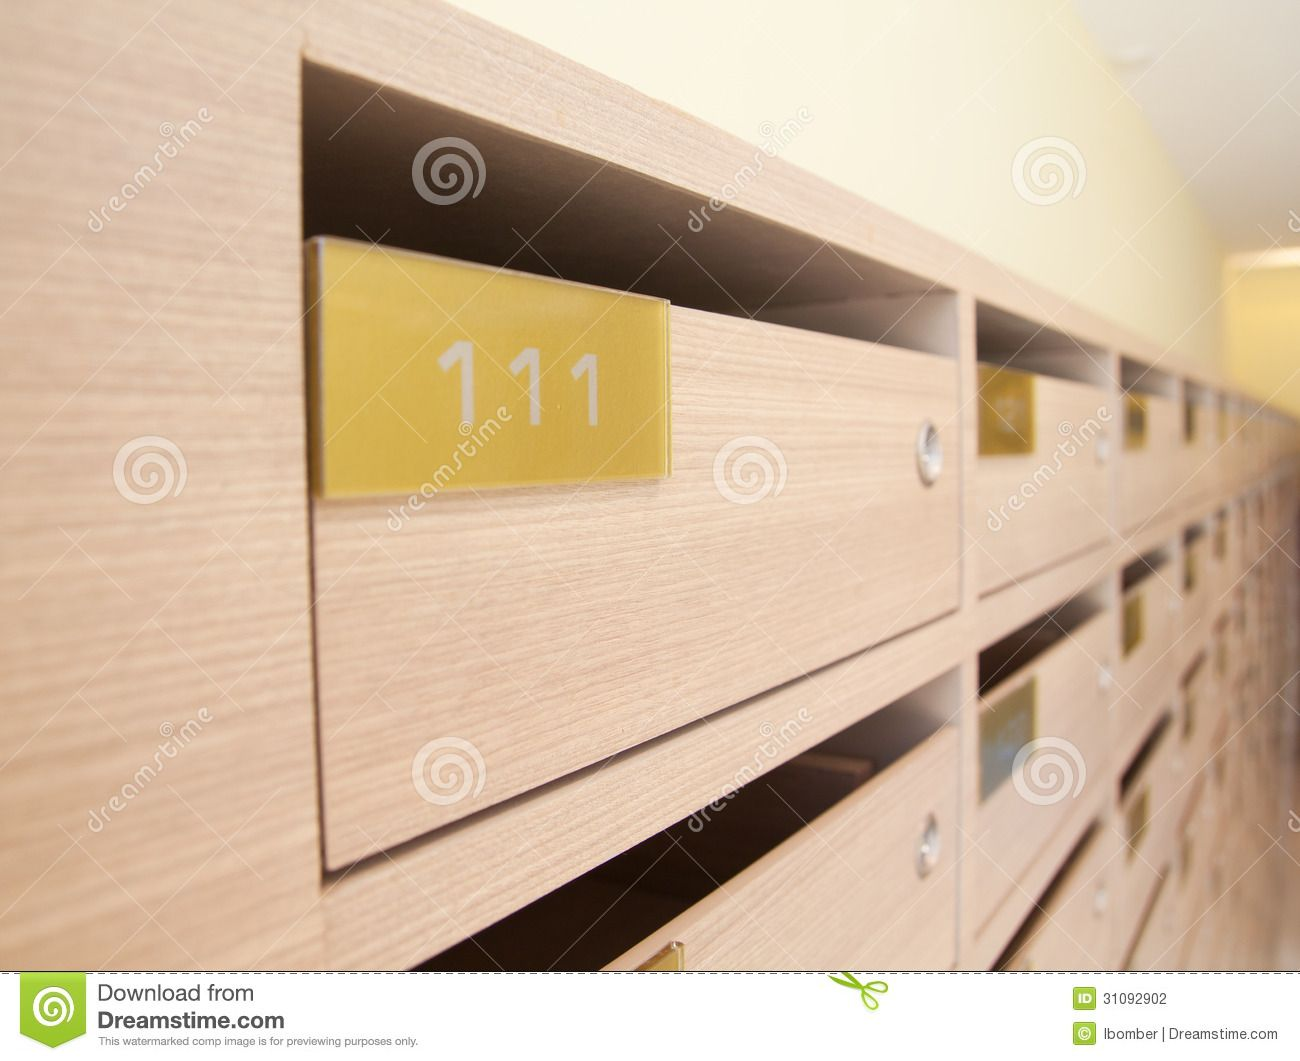 apartment mailbox design - Google Search | mail box | Pinterest ...